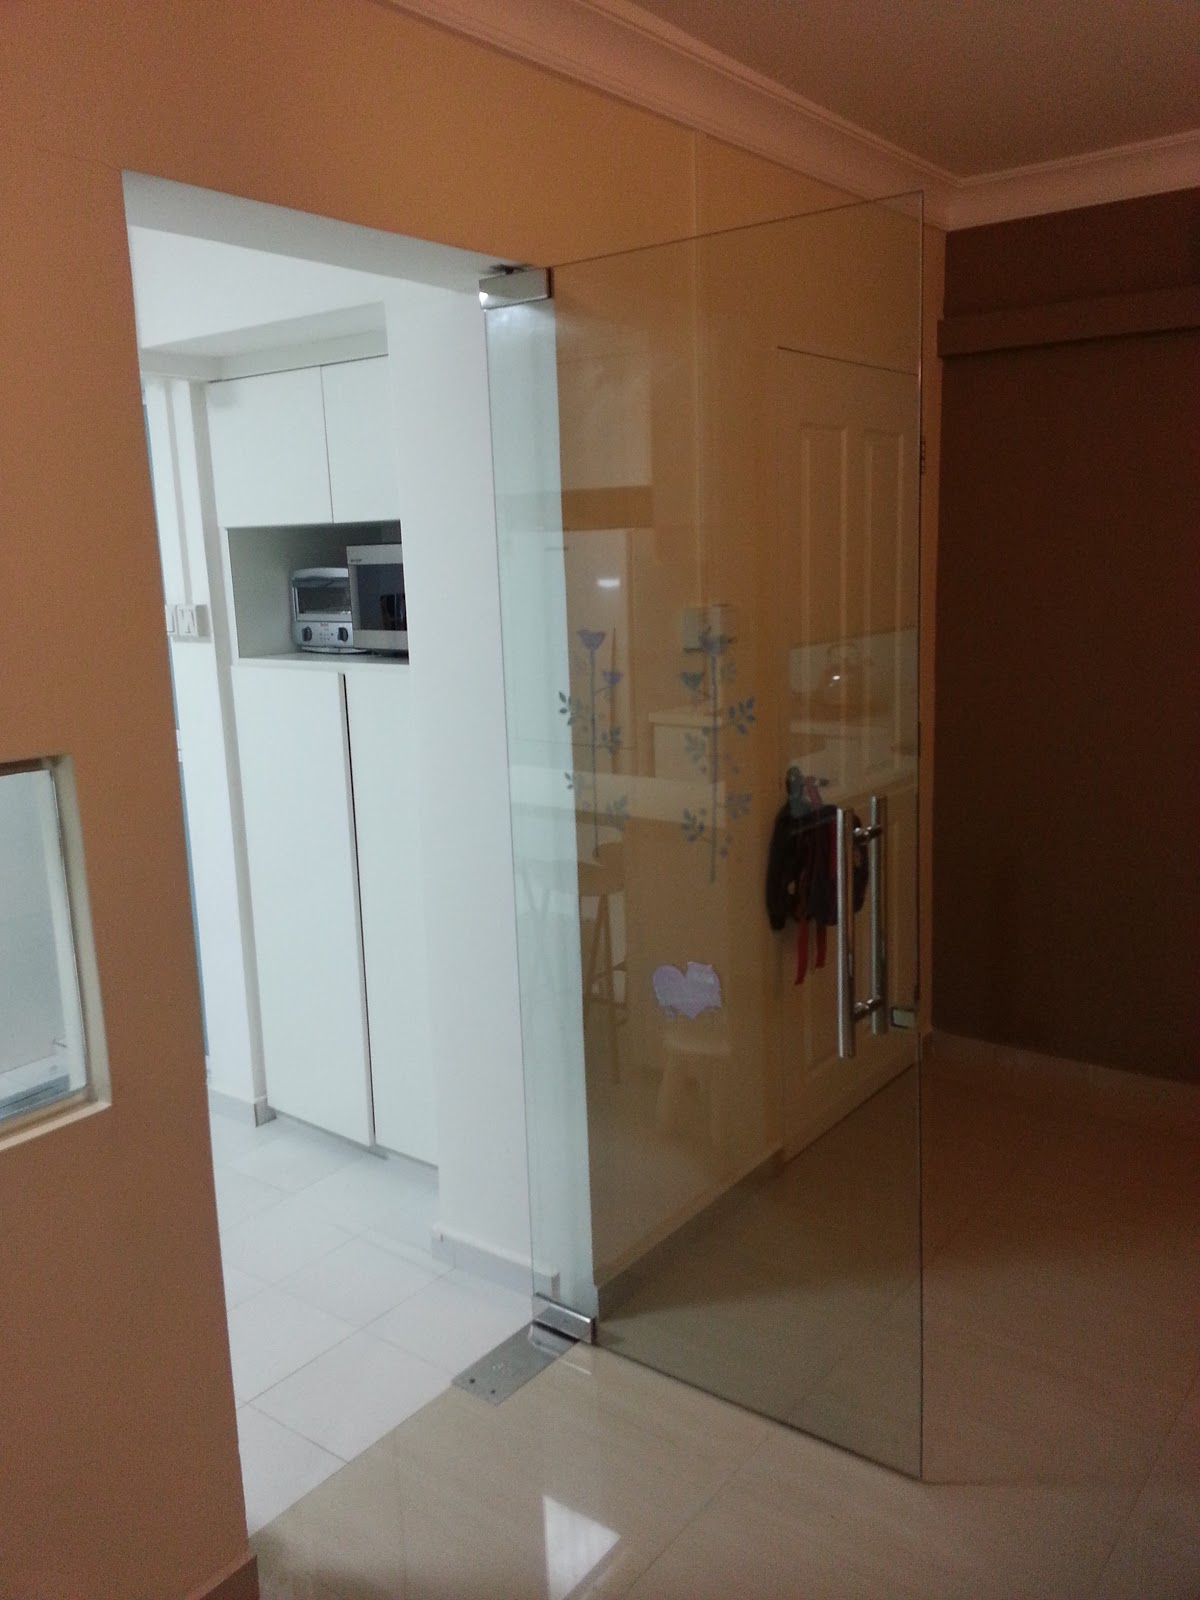 Our hdb flat renovation in 2009 glass door and kitchen for Kitchen door with window